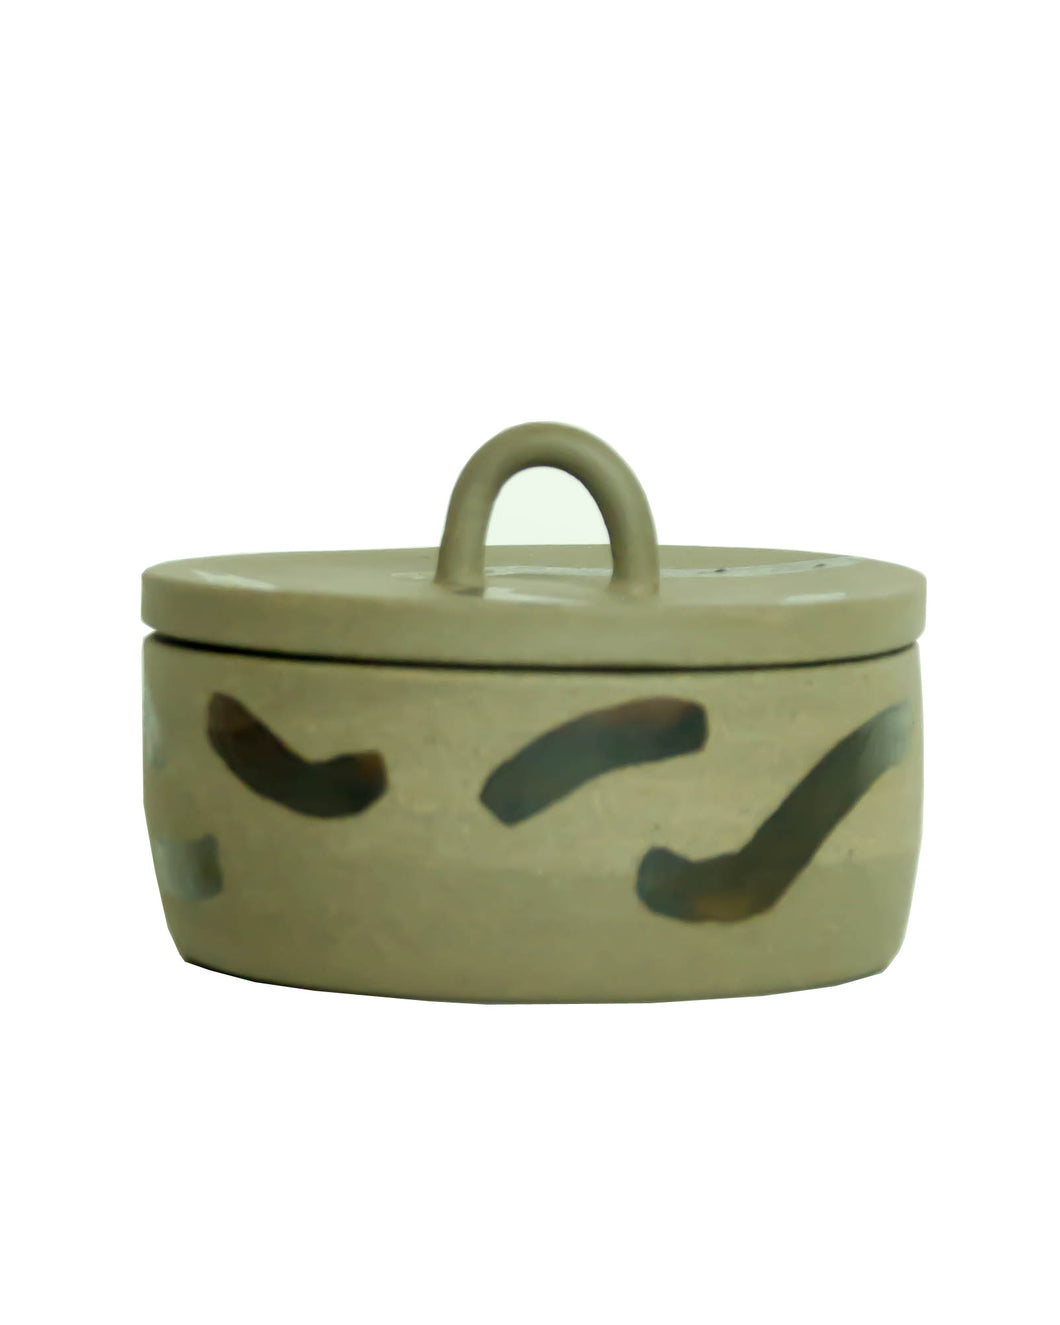 Kibi Ceramic Keepsafe | with handle - Elliott St.